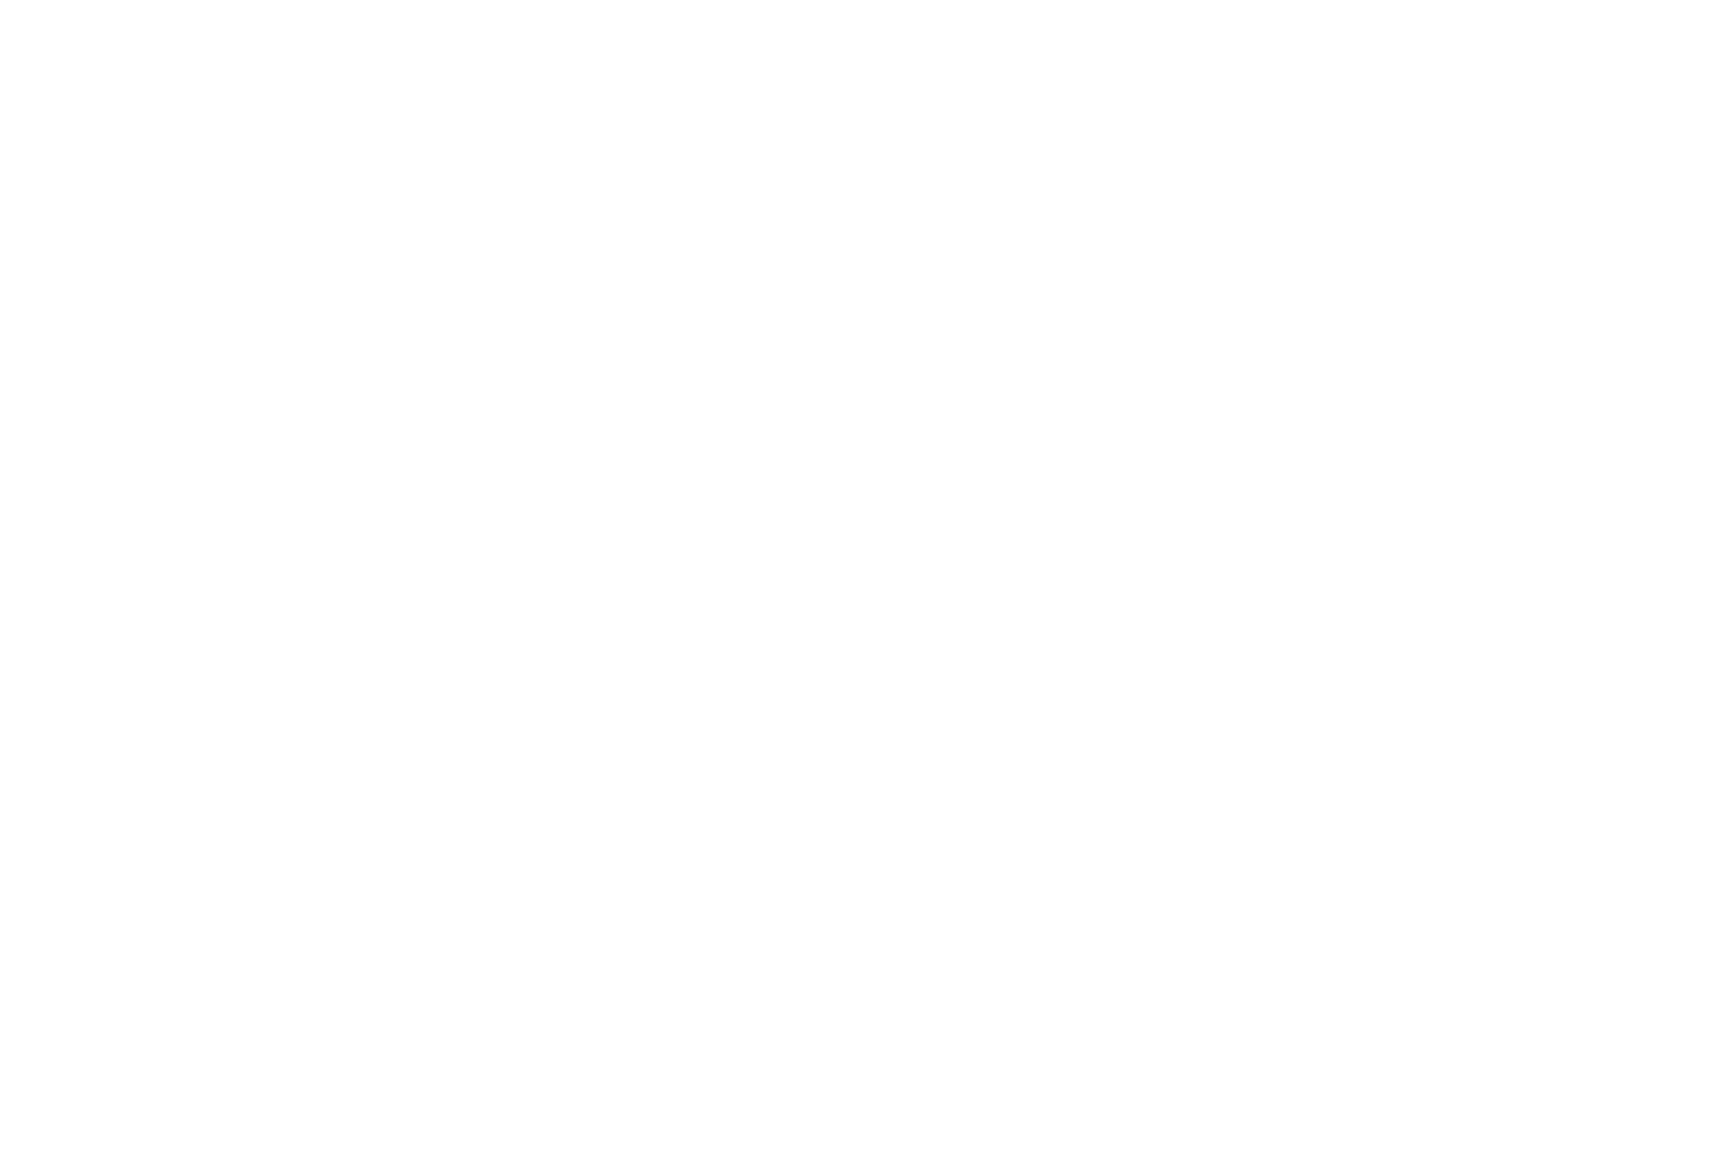 FINALIST - Calcasieu Parish Short Film Festival - 2020